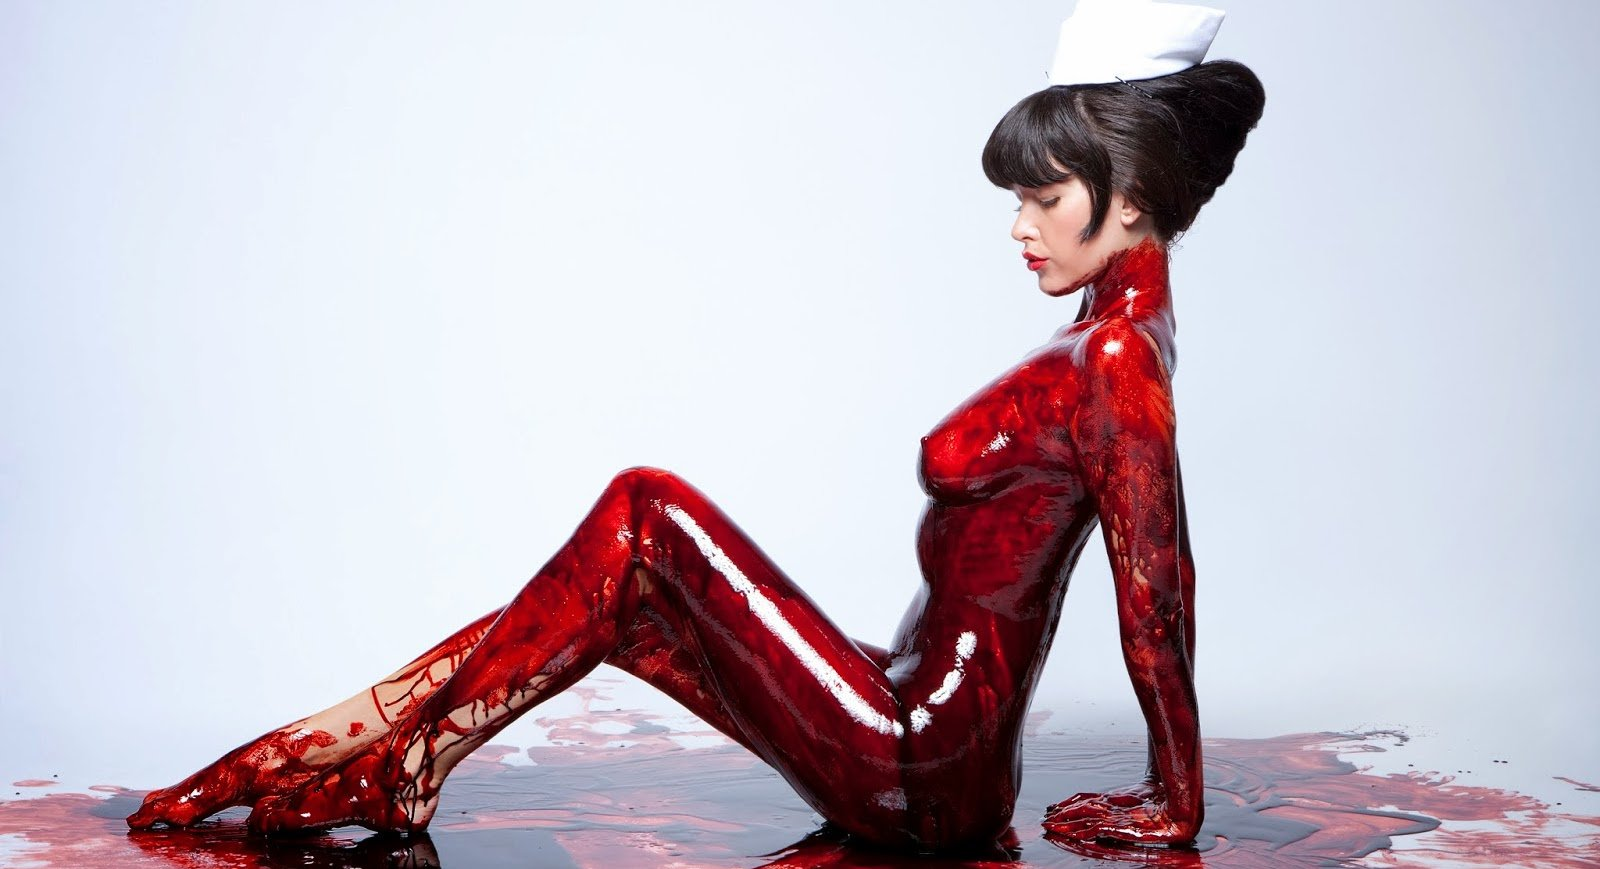 Nurse 3D - Available on DVD/Blu-Ray, reviews, trailers